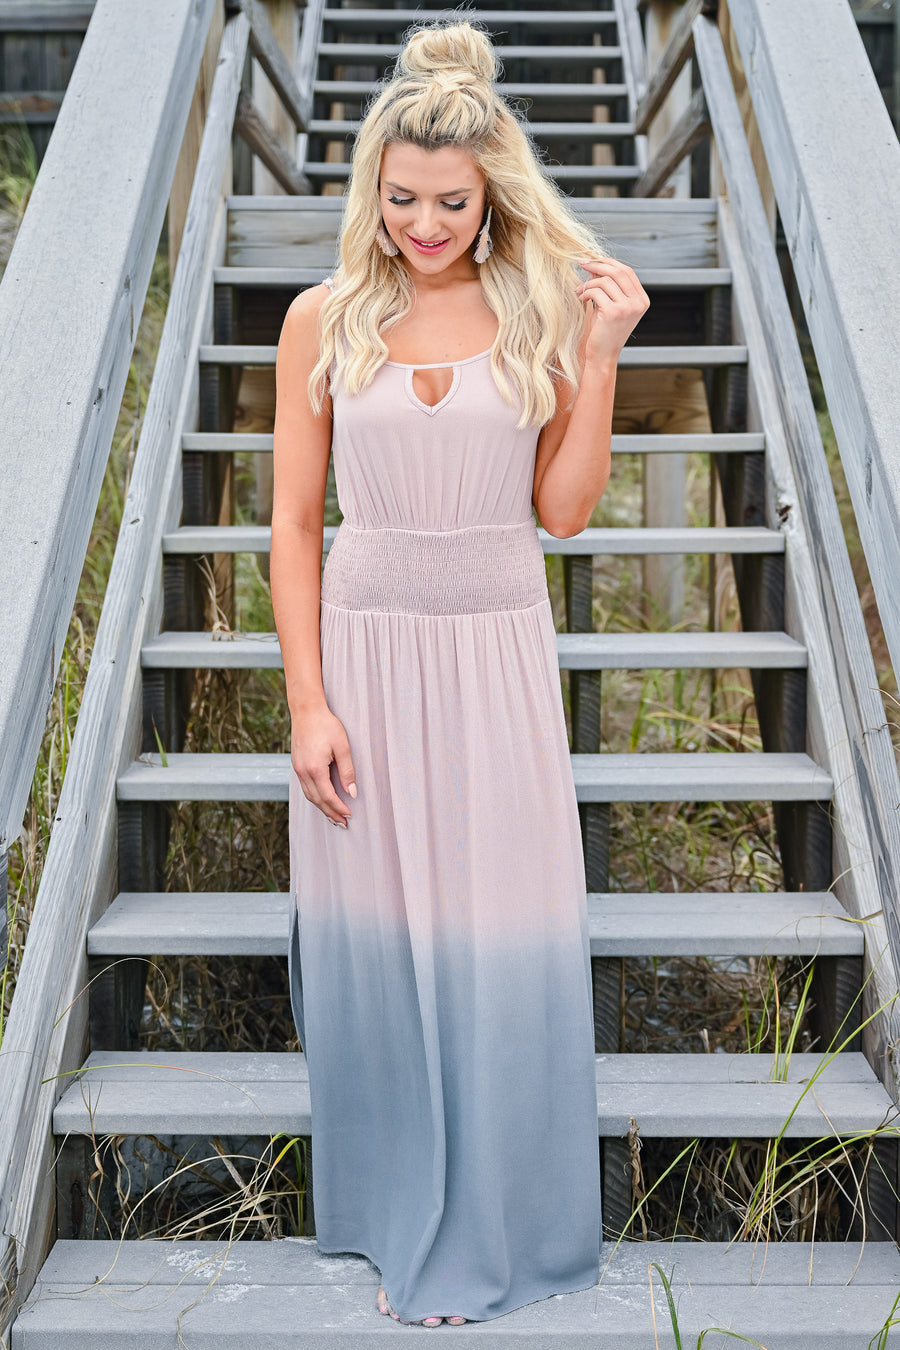 True Connection Ombre Maxi Dress - Dusty Rose womens trendy ombre sleeveless keyhole detail maxi dress closet candy front